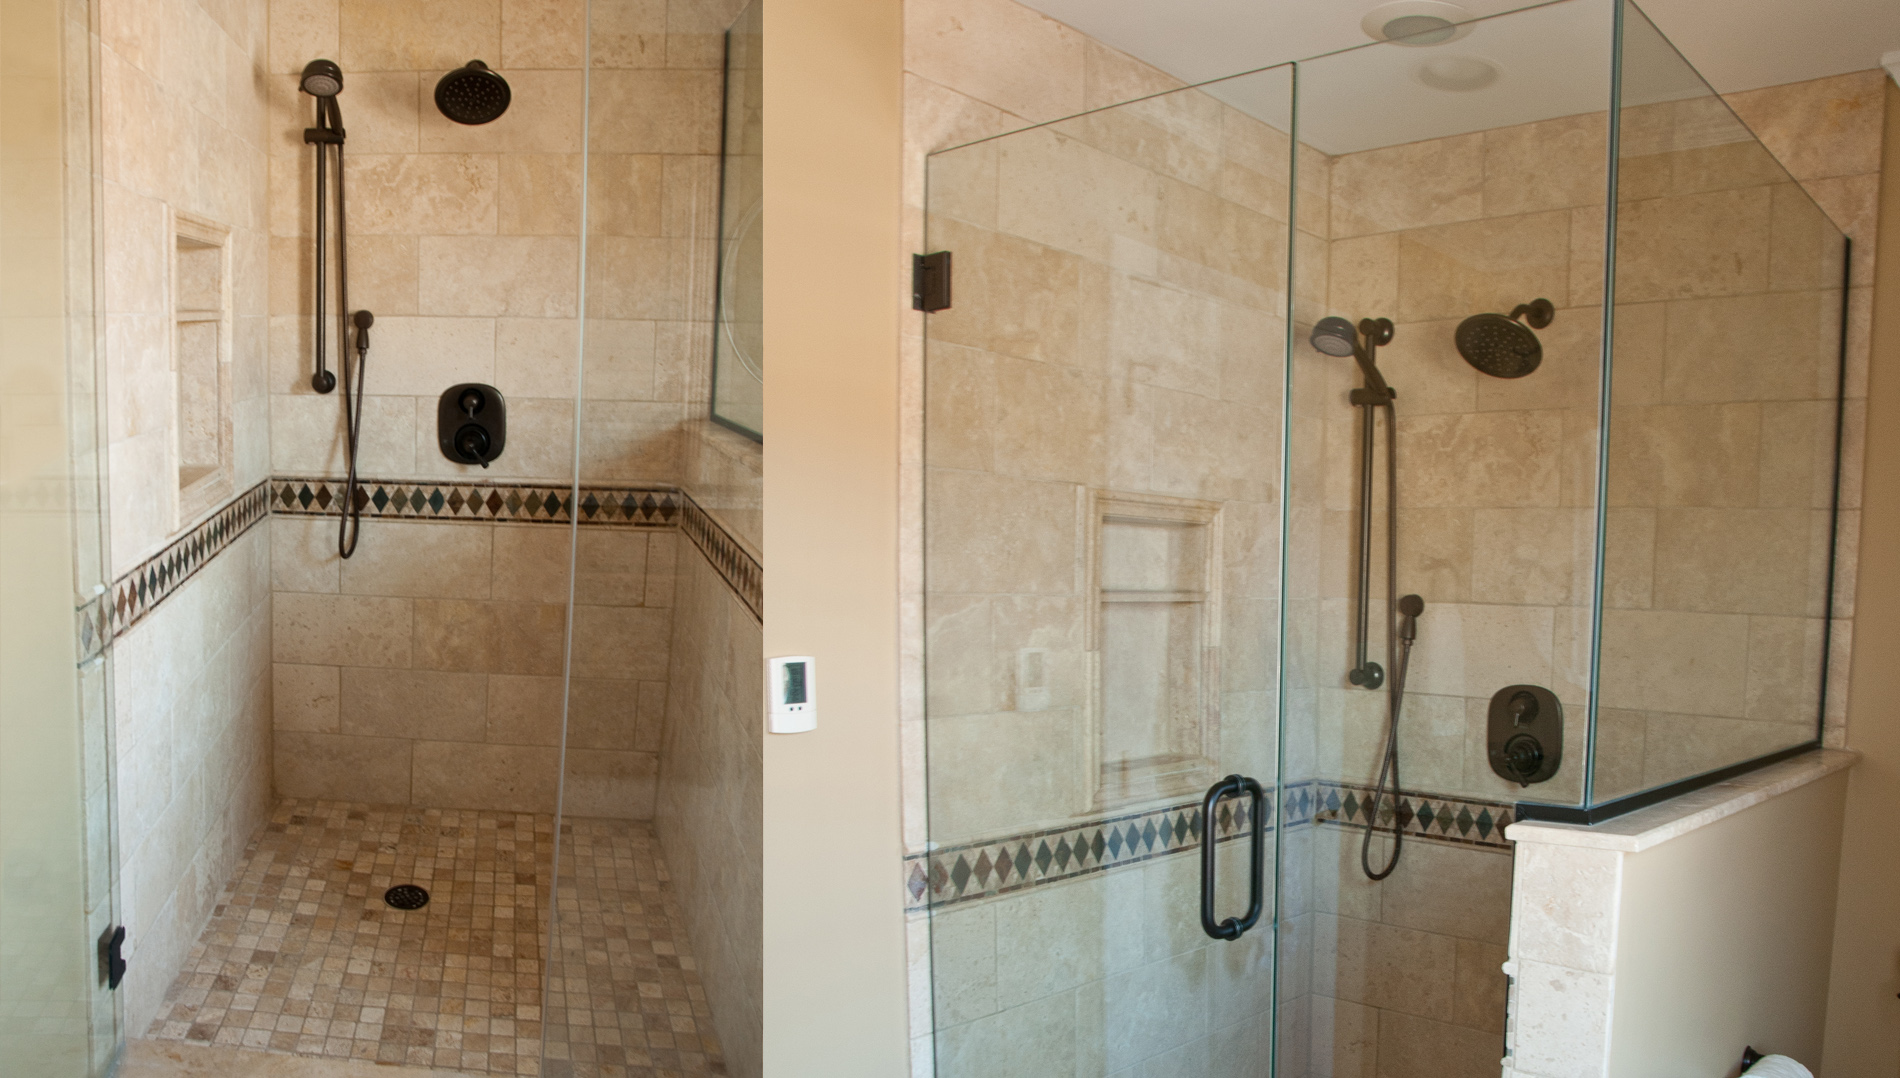 Heavy, Frameless Glass Panels, A Recessed Niche, Tiled Shower Floor And A Hand  Held Shower Head On Slide Bar Are Some Of The Great Features Of This ...